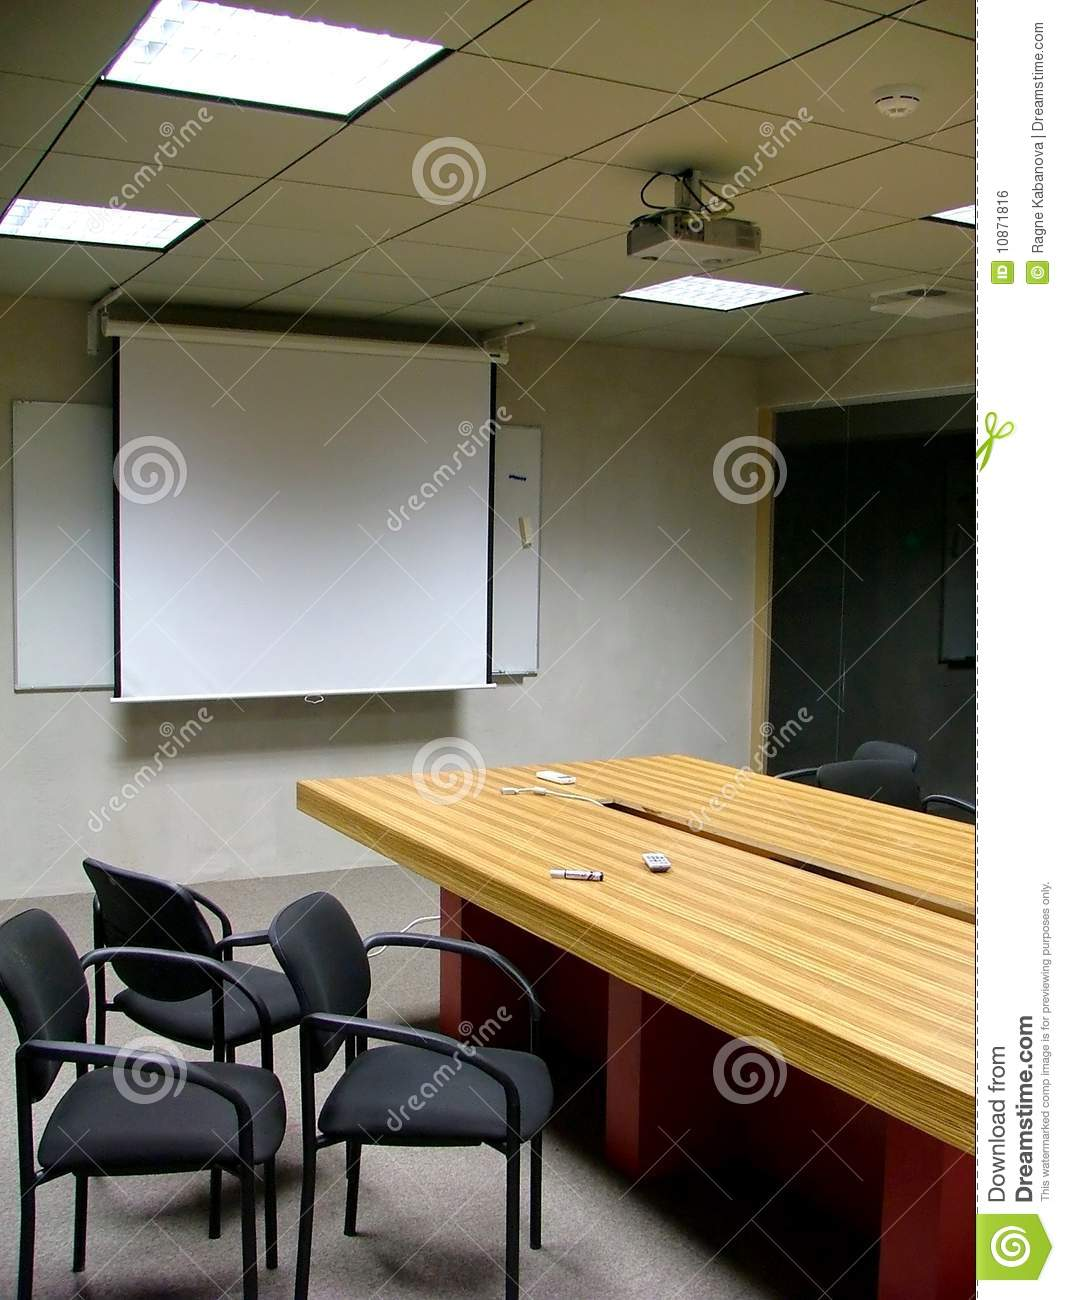 Empty Office Room After A Meeting Royalty Free Stock Image